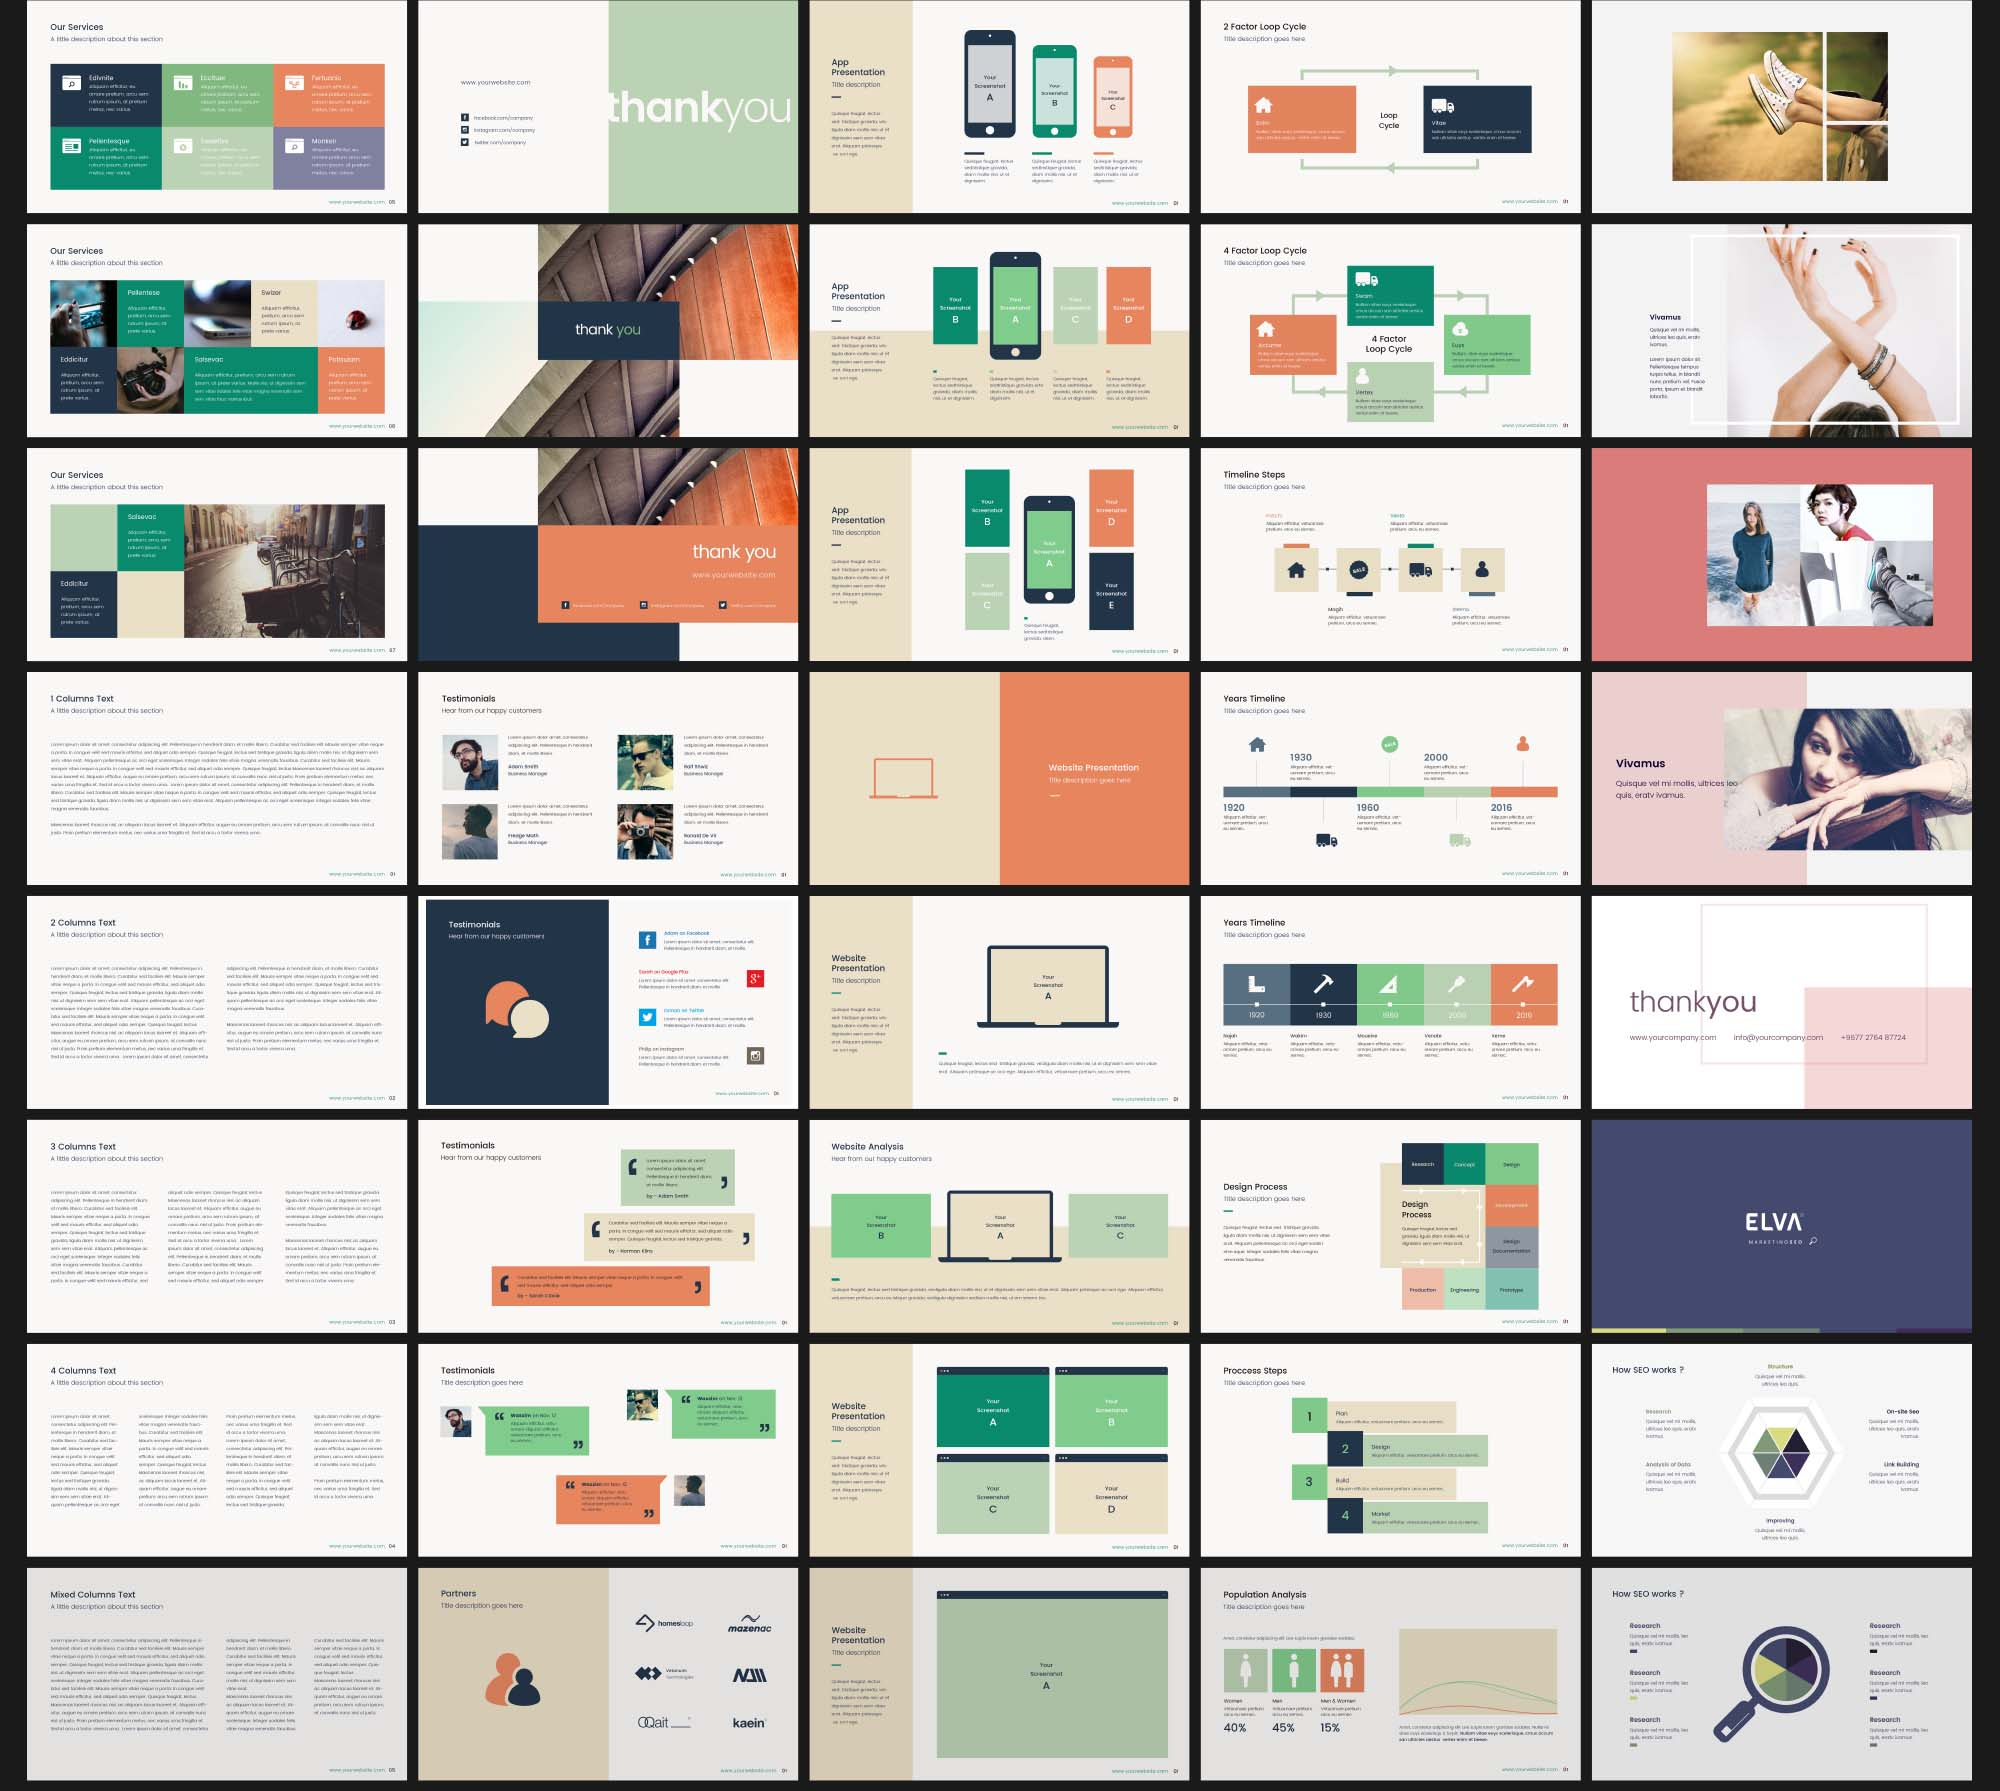 wsu extension powerpoint template image collections - powerpoint, Modern powerpoint